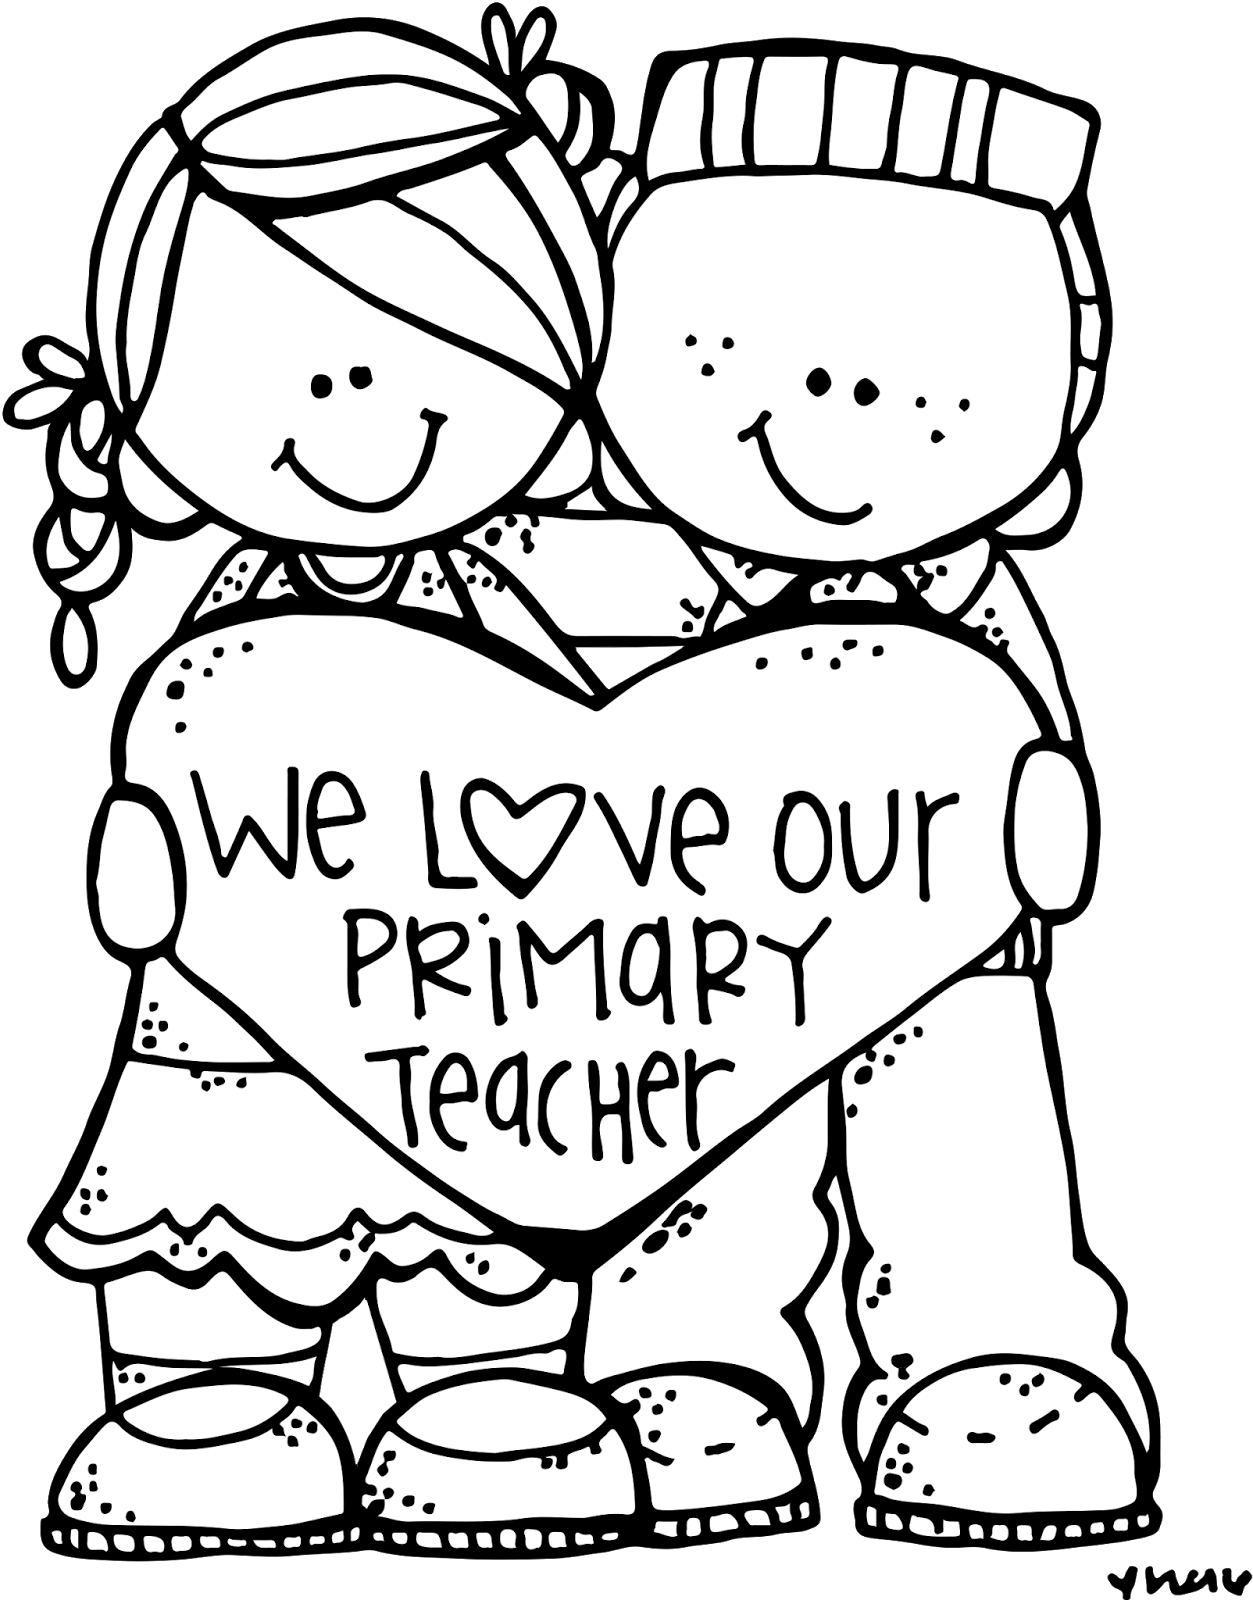 Love Primary Teacher Mhldsf 28c 29 Melonheadz